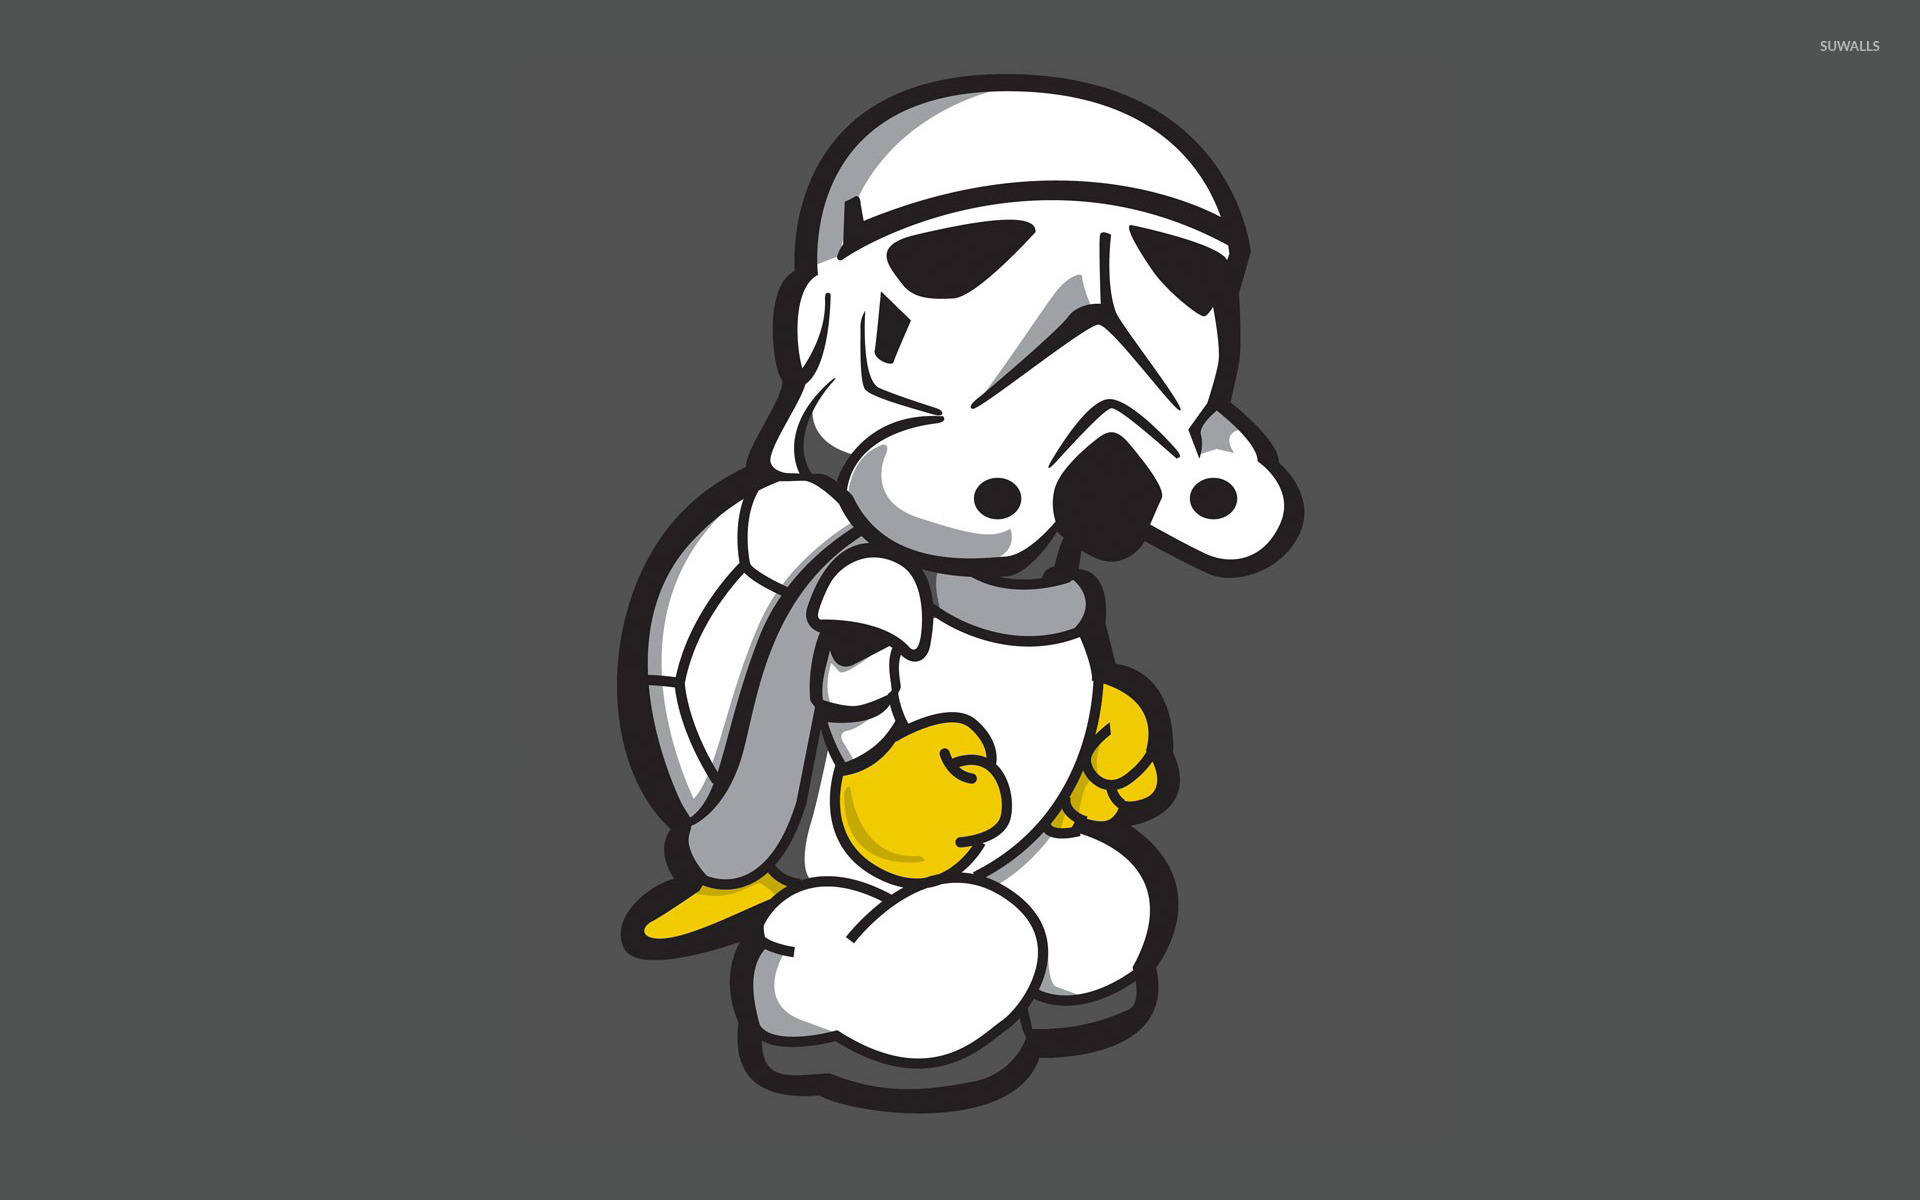 Stormtroopa wallpaper - Game wallpapers - #17027